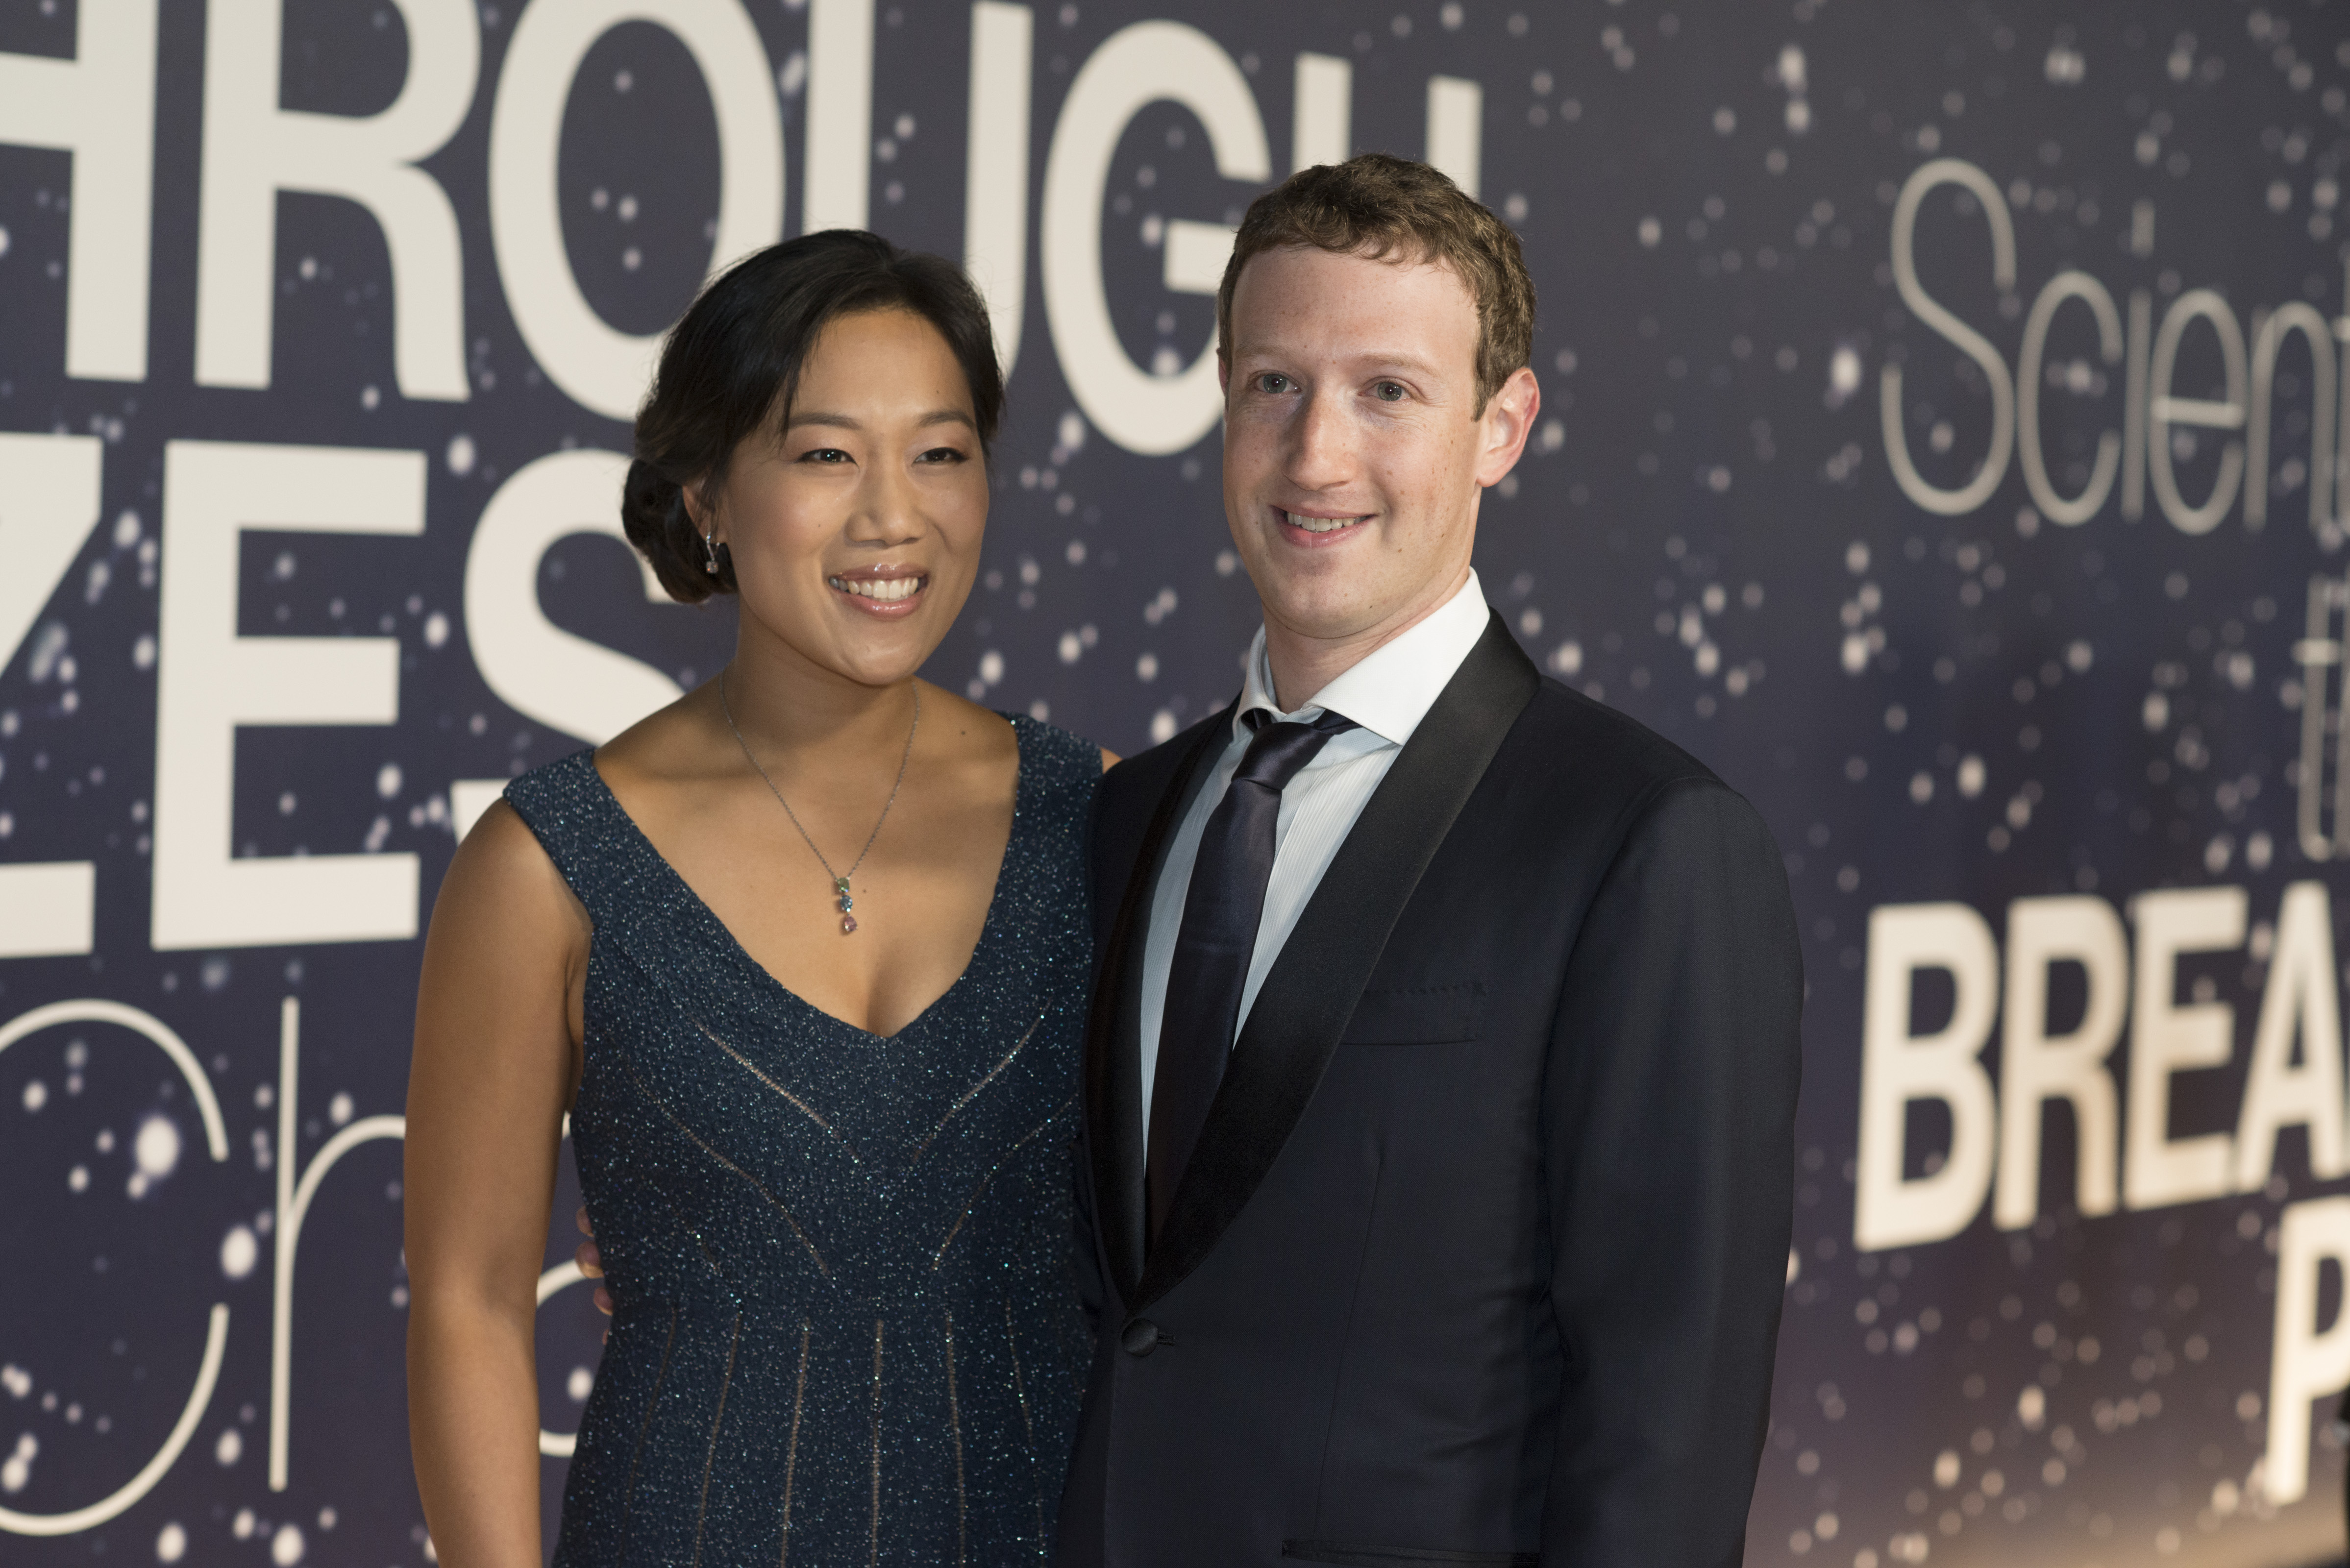 Priscilla Chan and Mark Zuckerberg at an award ceremony in 2014.